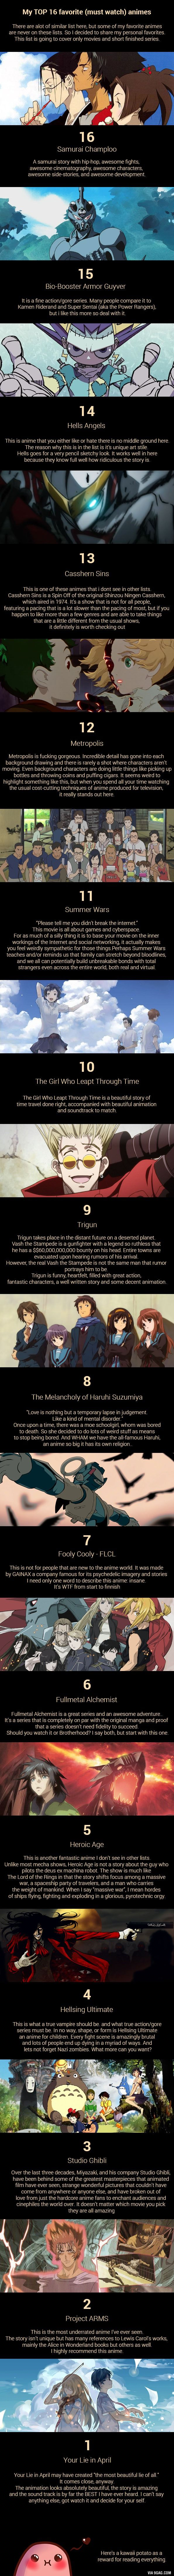 My top 16 must-watch anime list. With short reviews.